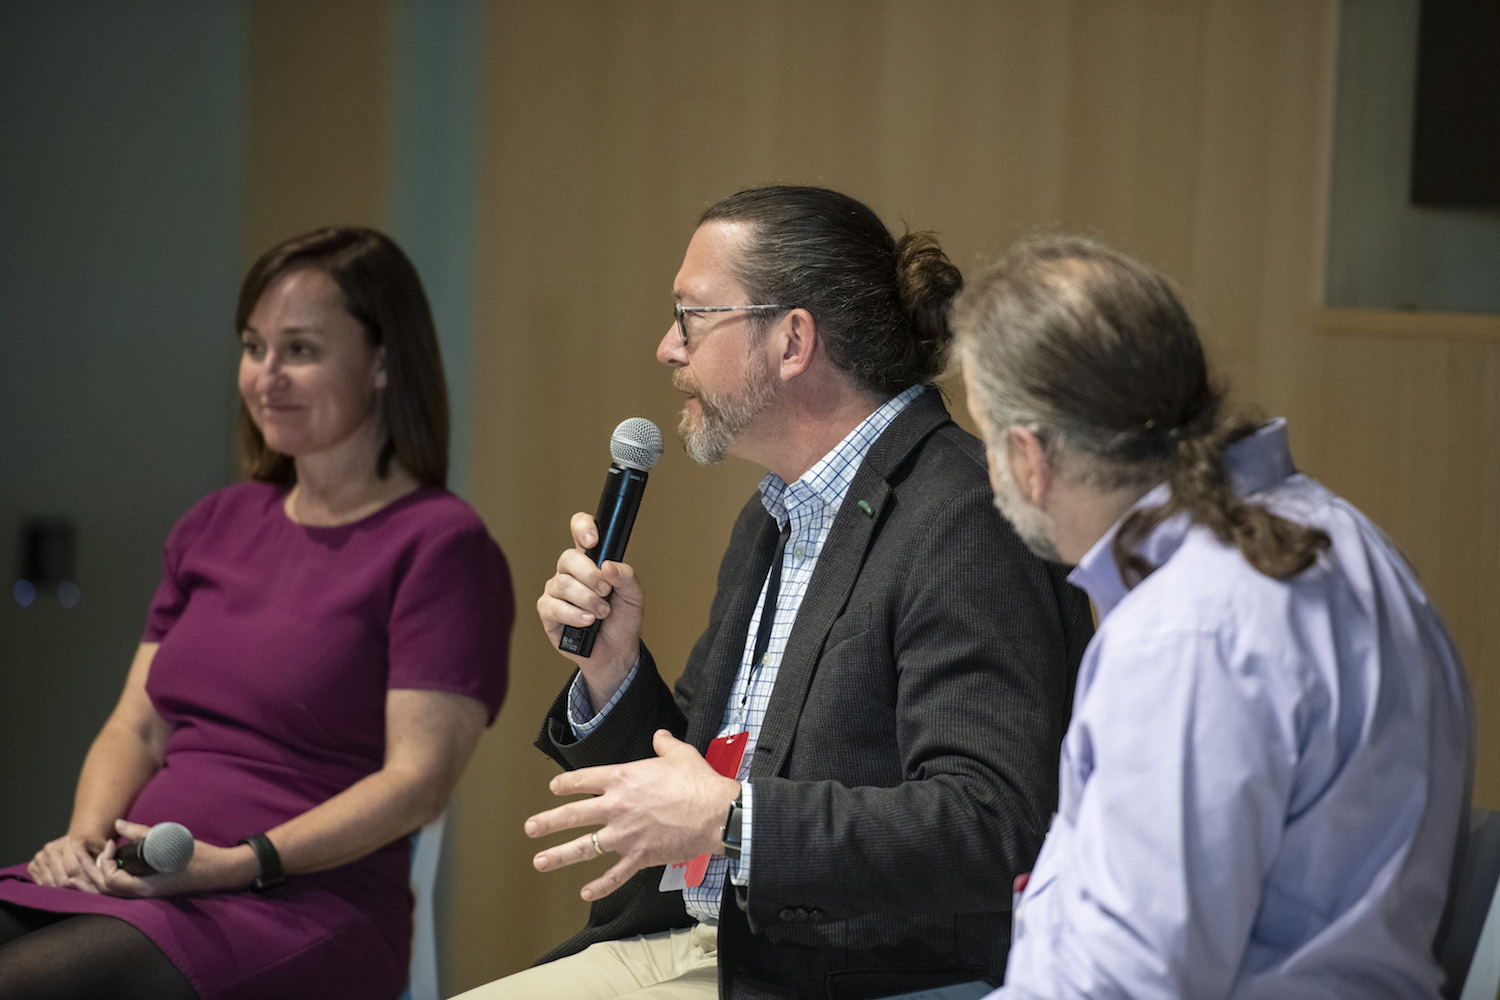 Carnegie Mellon University's Norman Bier and Lumen Learning's Kim Thanos participating in a panel discussion.